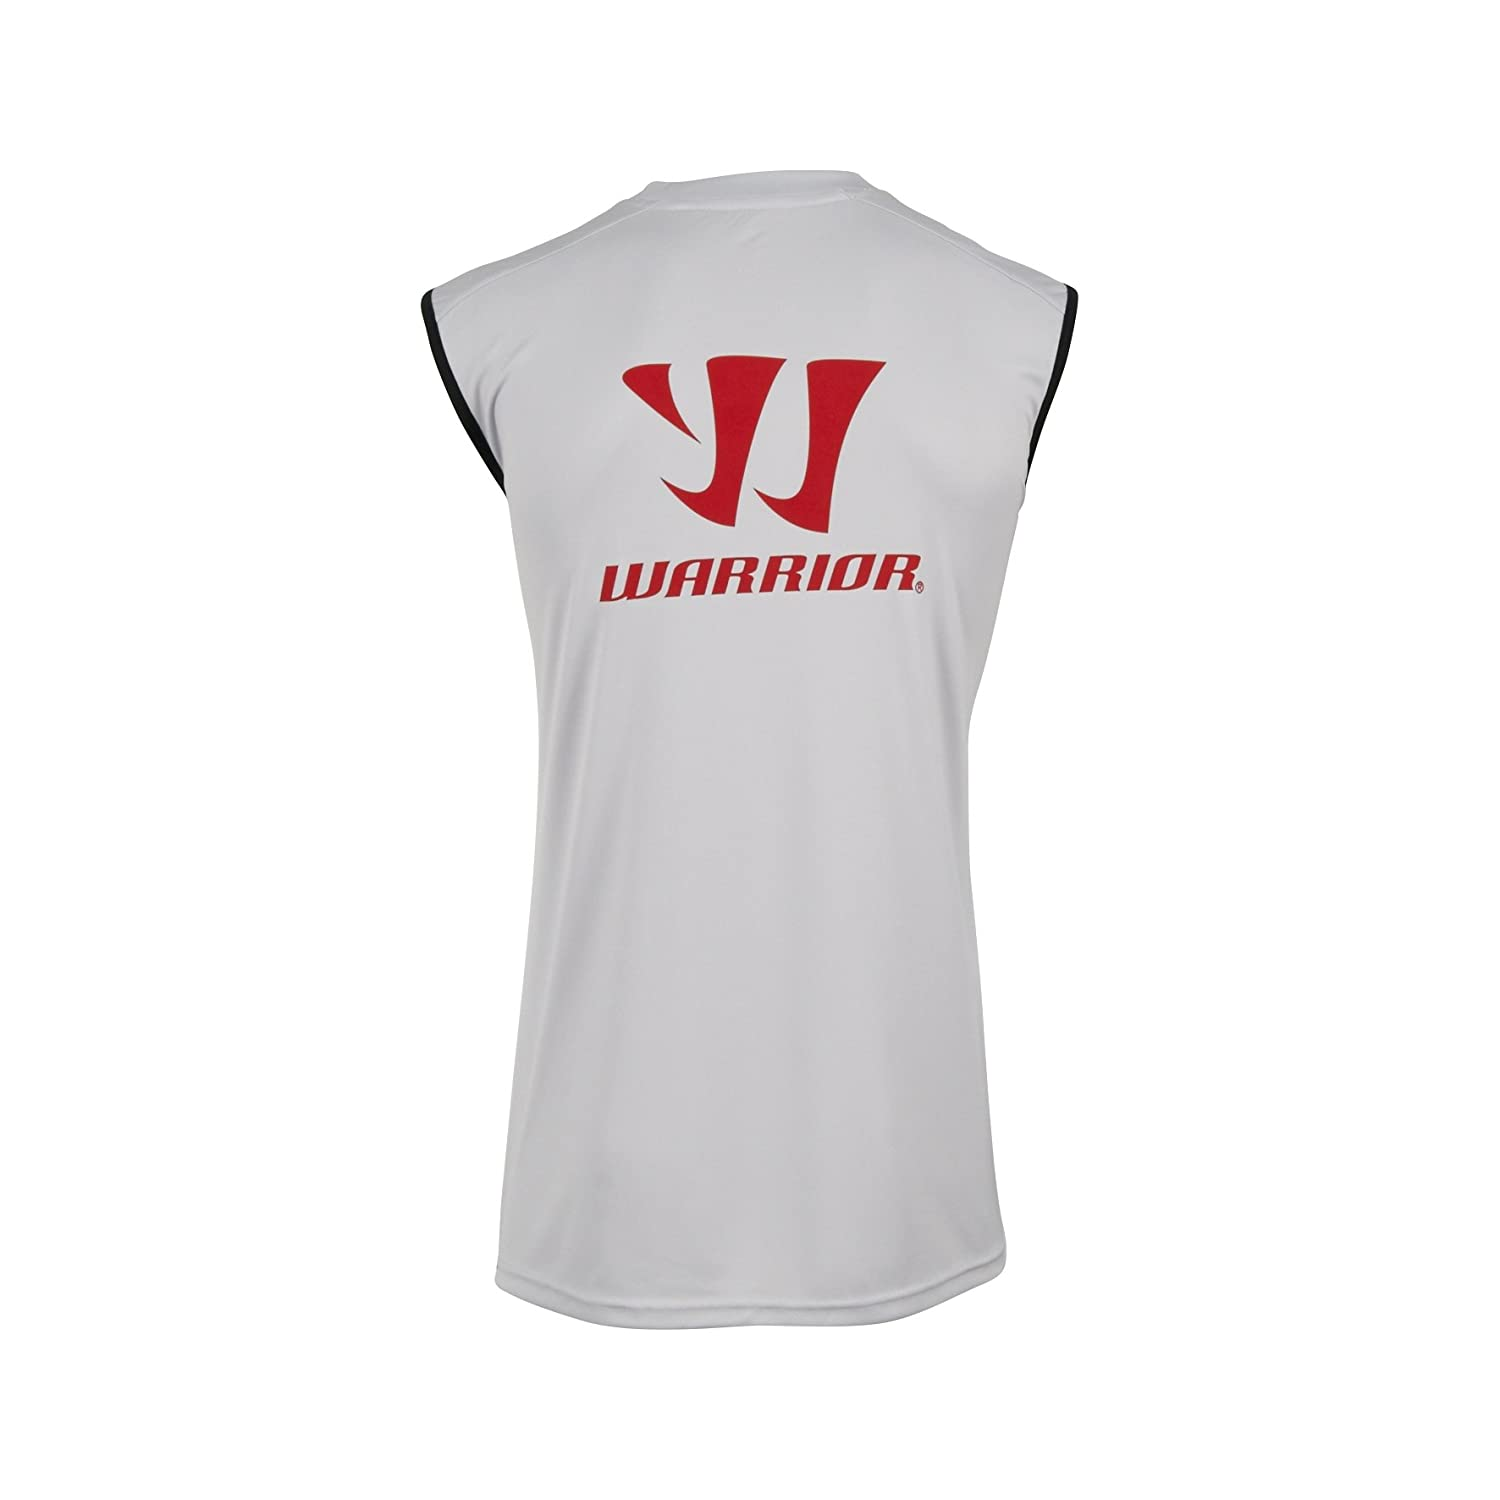 Amazon.com : 2013-14 Liverpool Warrior Sleeveless Jersey (Grey) : Sports  Fan Soccer Equipment : Sports & Outdoors